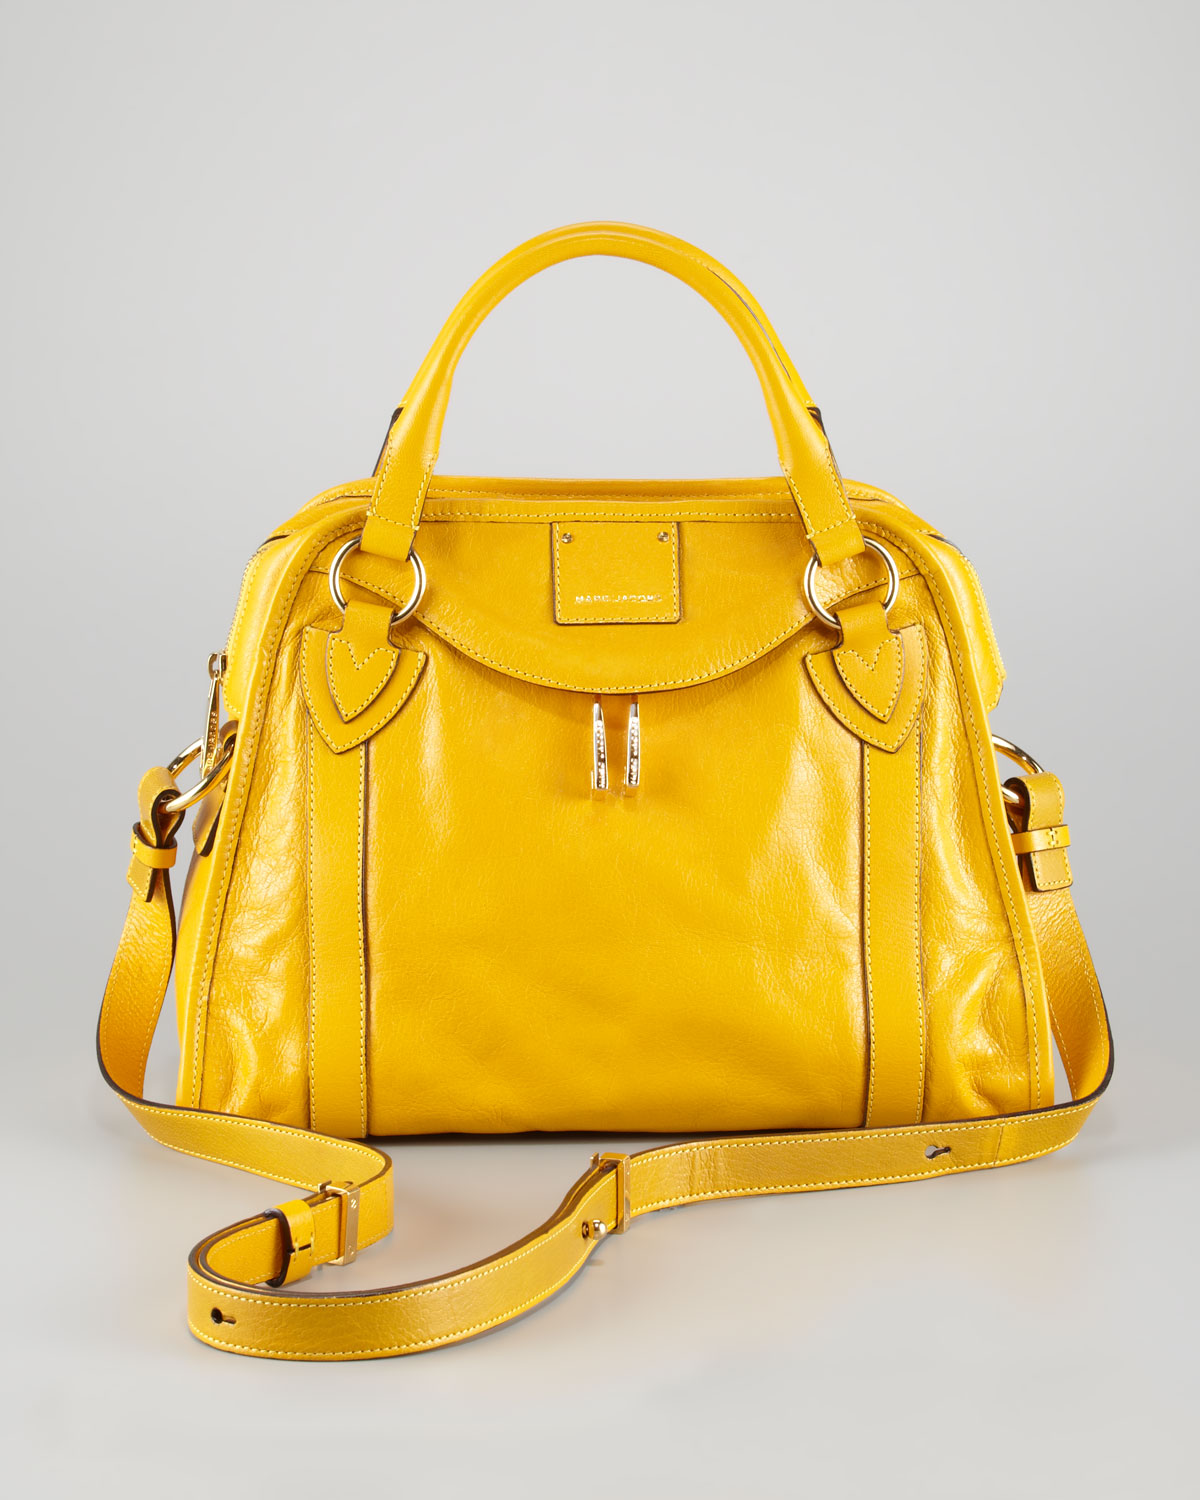 Marc jacobs Classic Wellington Satchel Bag Yellow in Yellow | Lyst